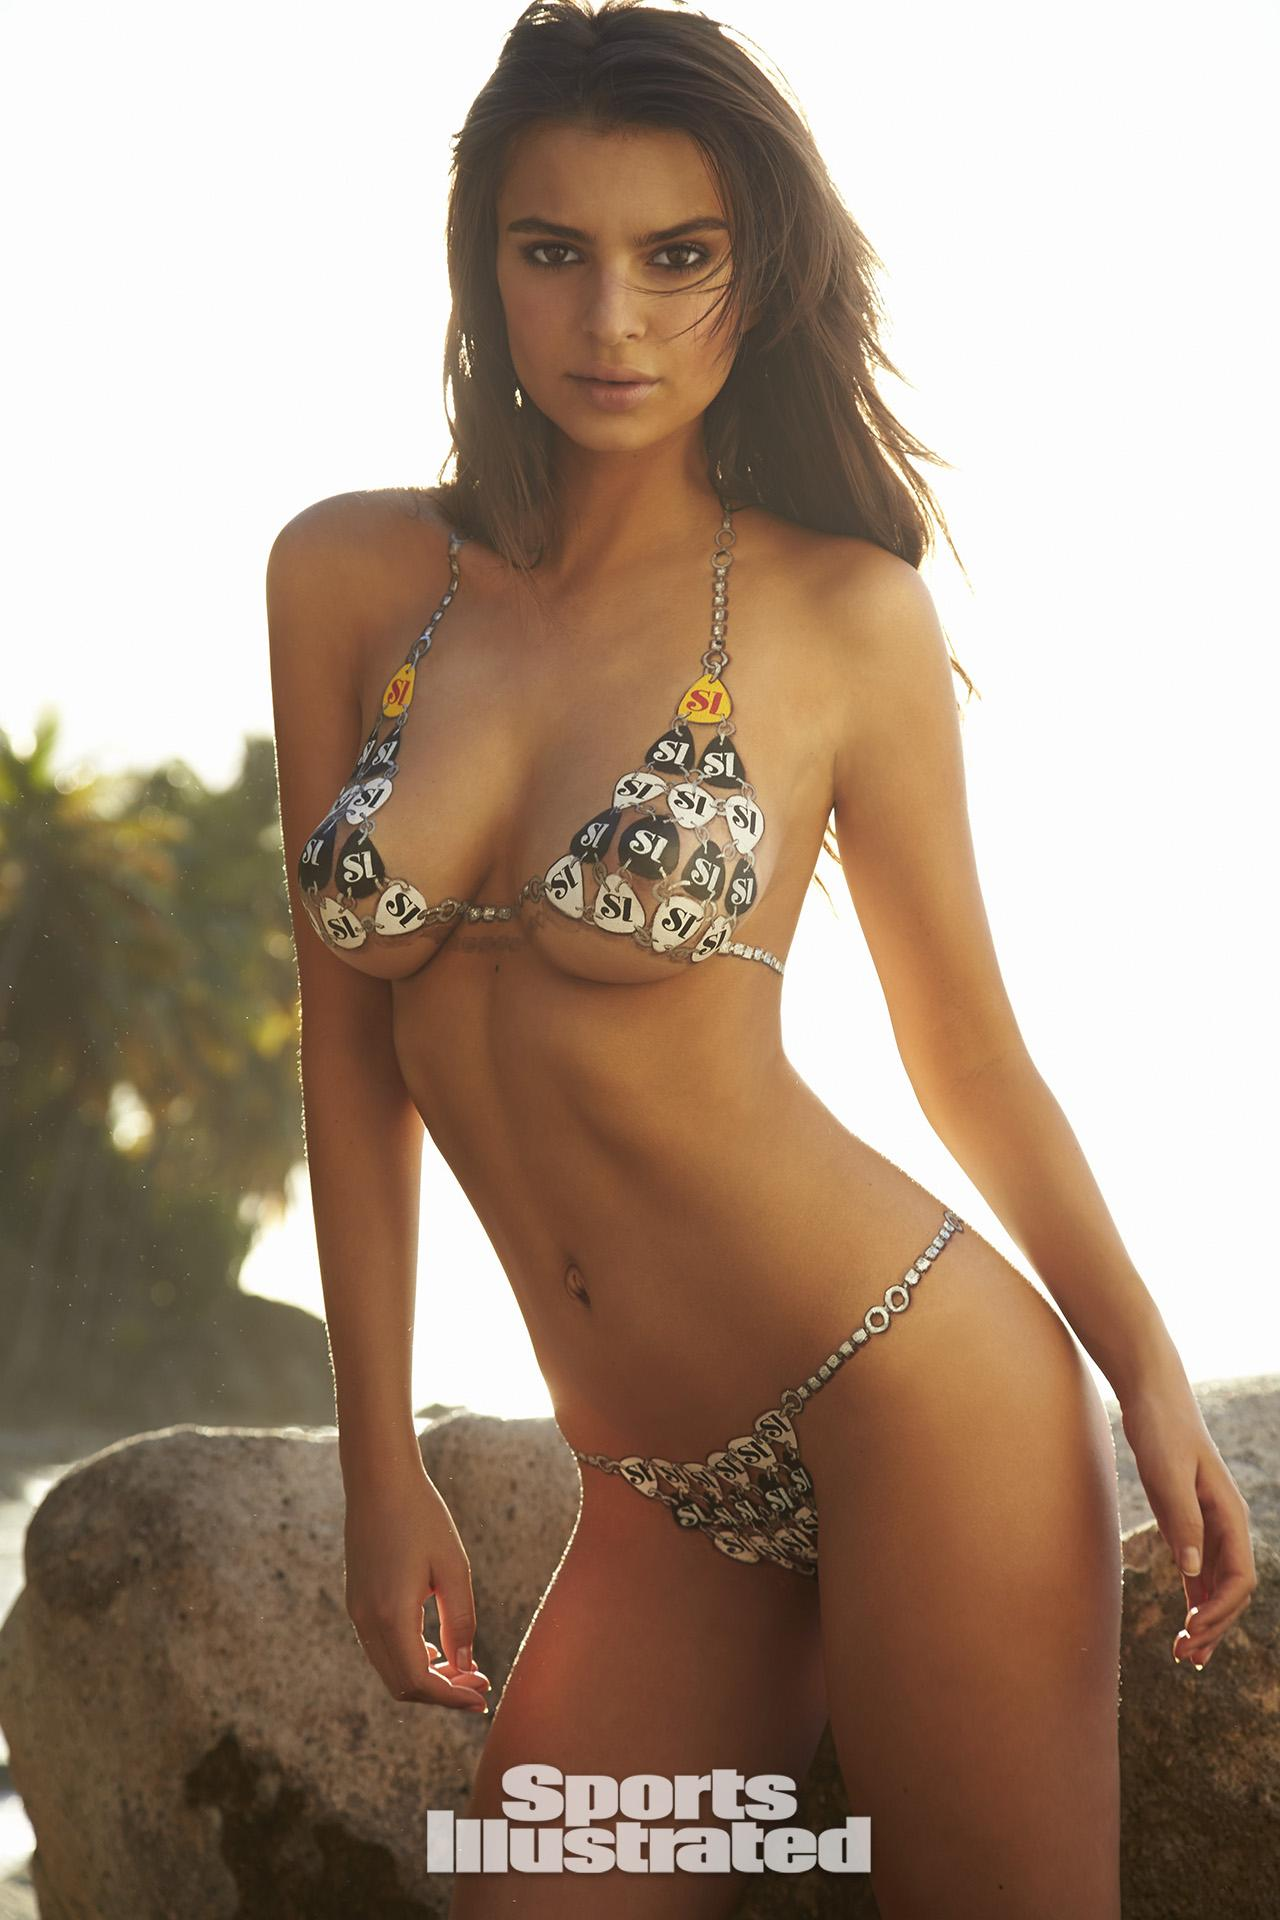 Swimsuit Body Paint Photos, Sports Illustrated Swimsuit 2014 Sports ...